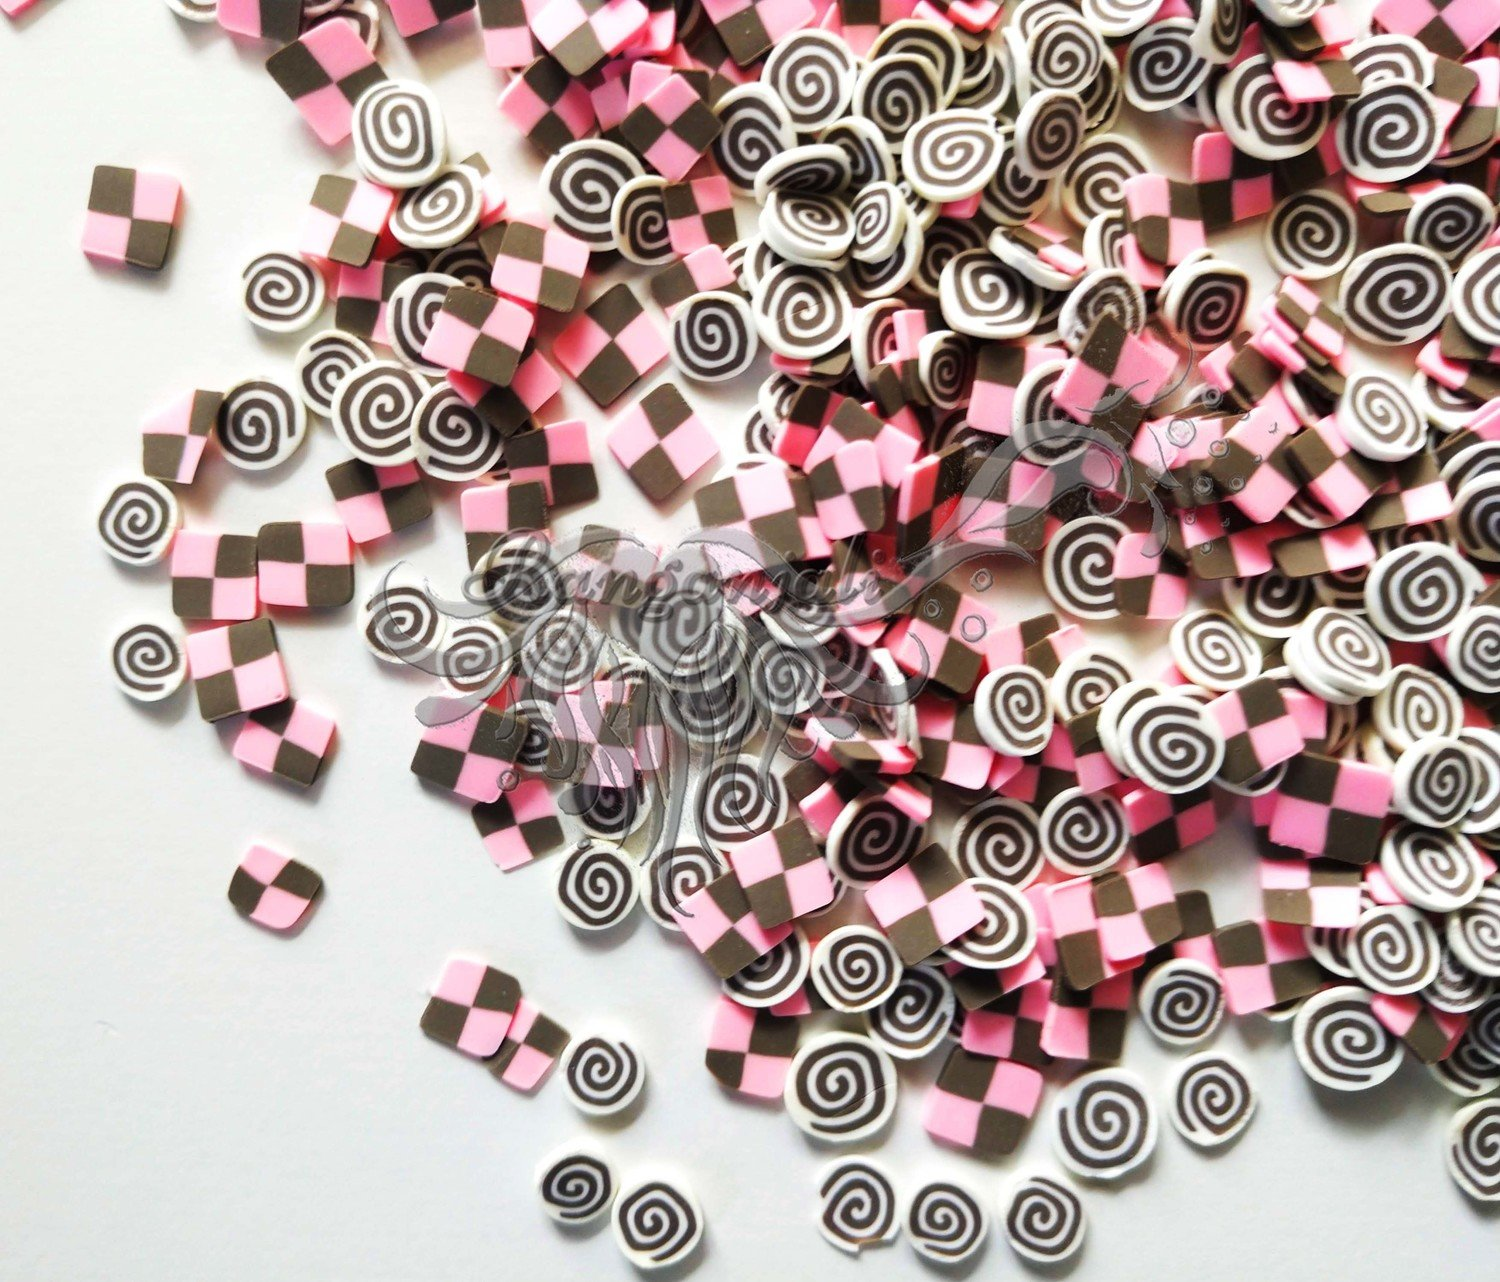 Stardust CHOCOLATE SPRINKLES Shaker Bits Mix